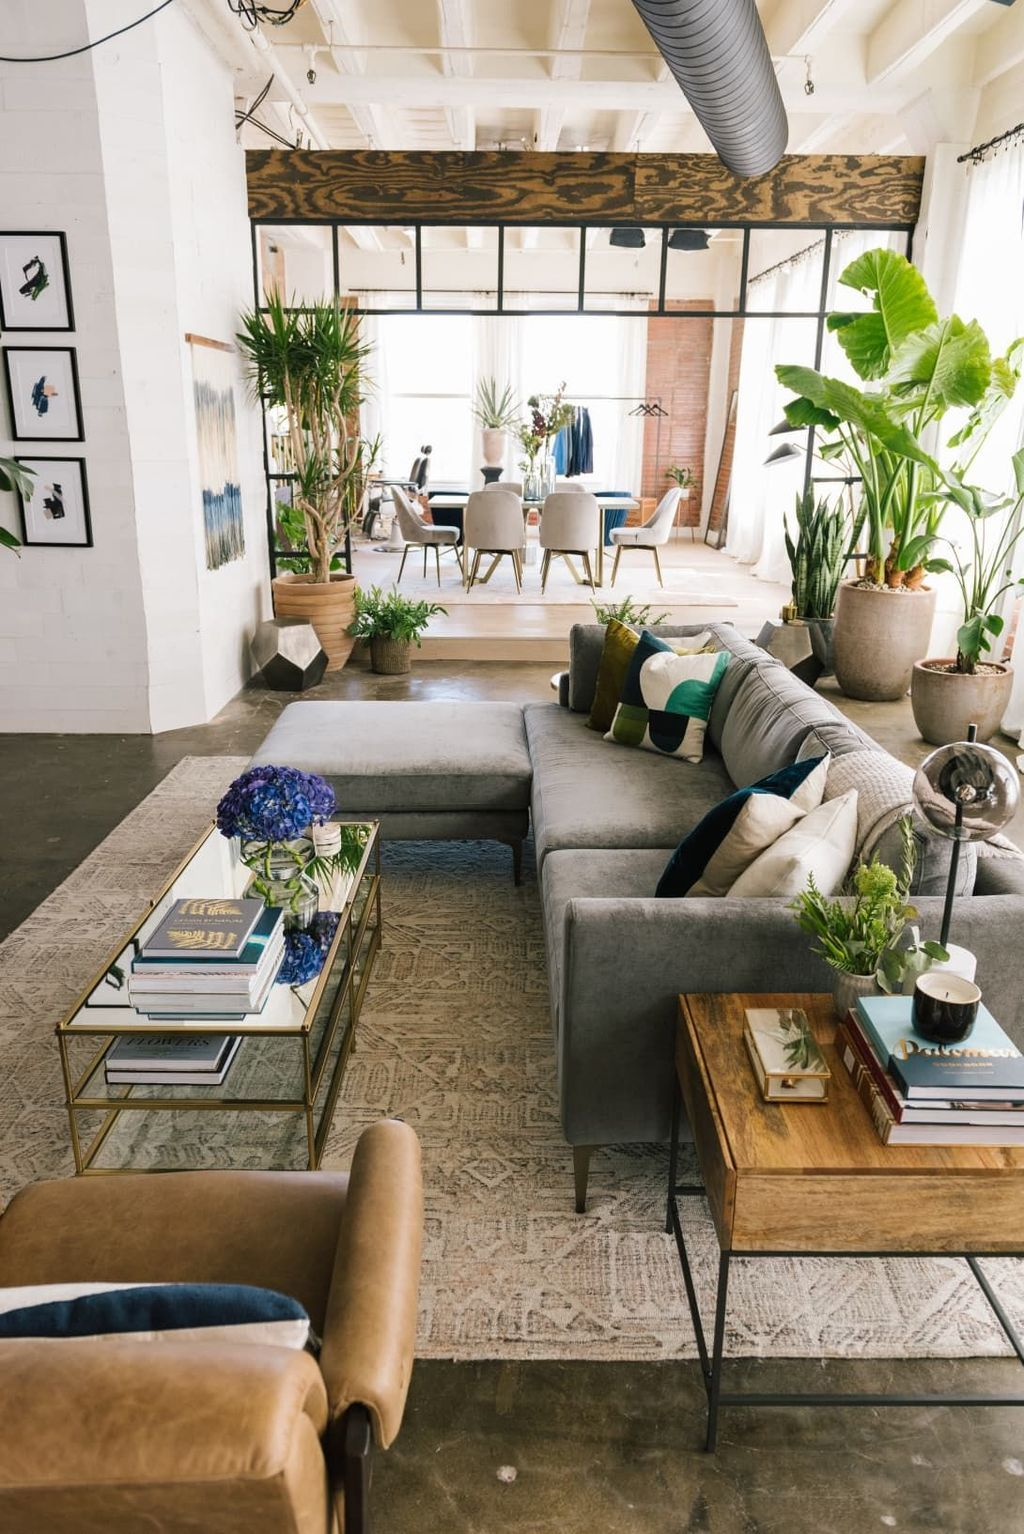 32 Stunning Loft Apartment Decorating Ideas You Should Try In 2020 Loft Apartment Decorating Industrial Apartment Decor Living Room Loft